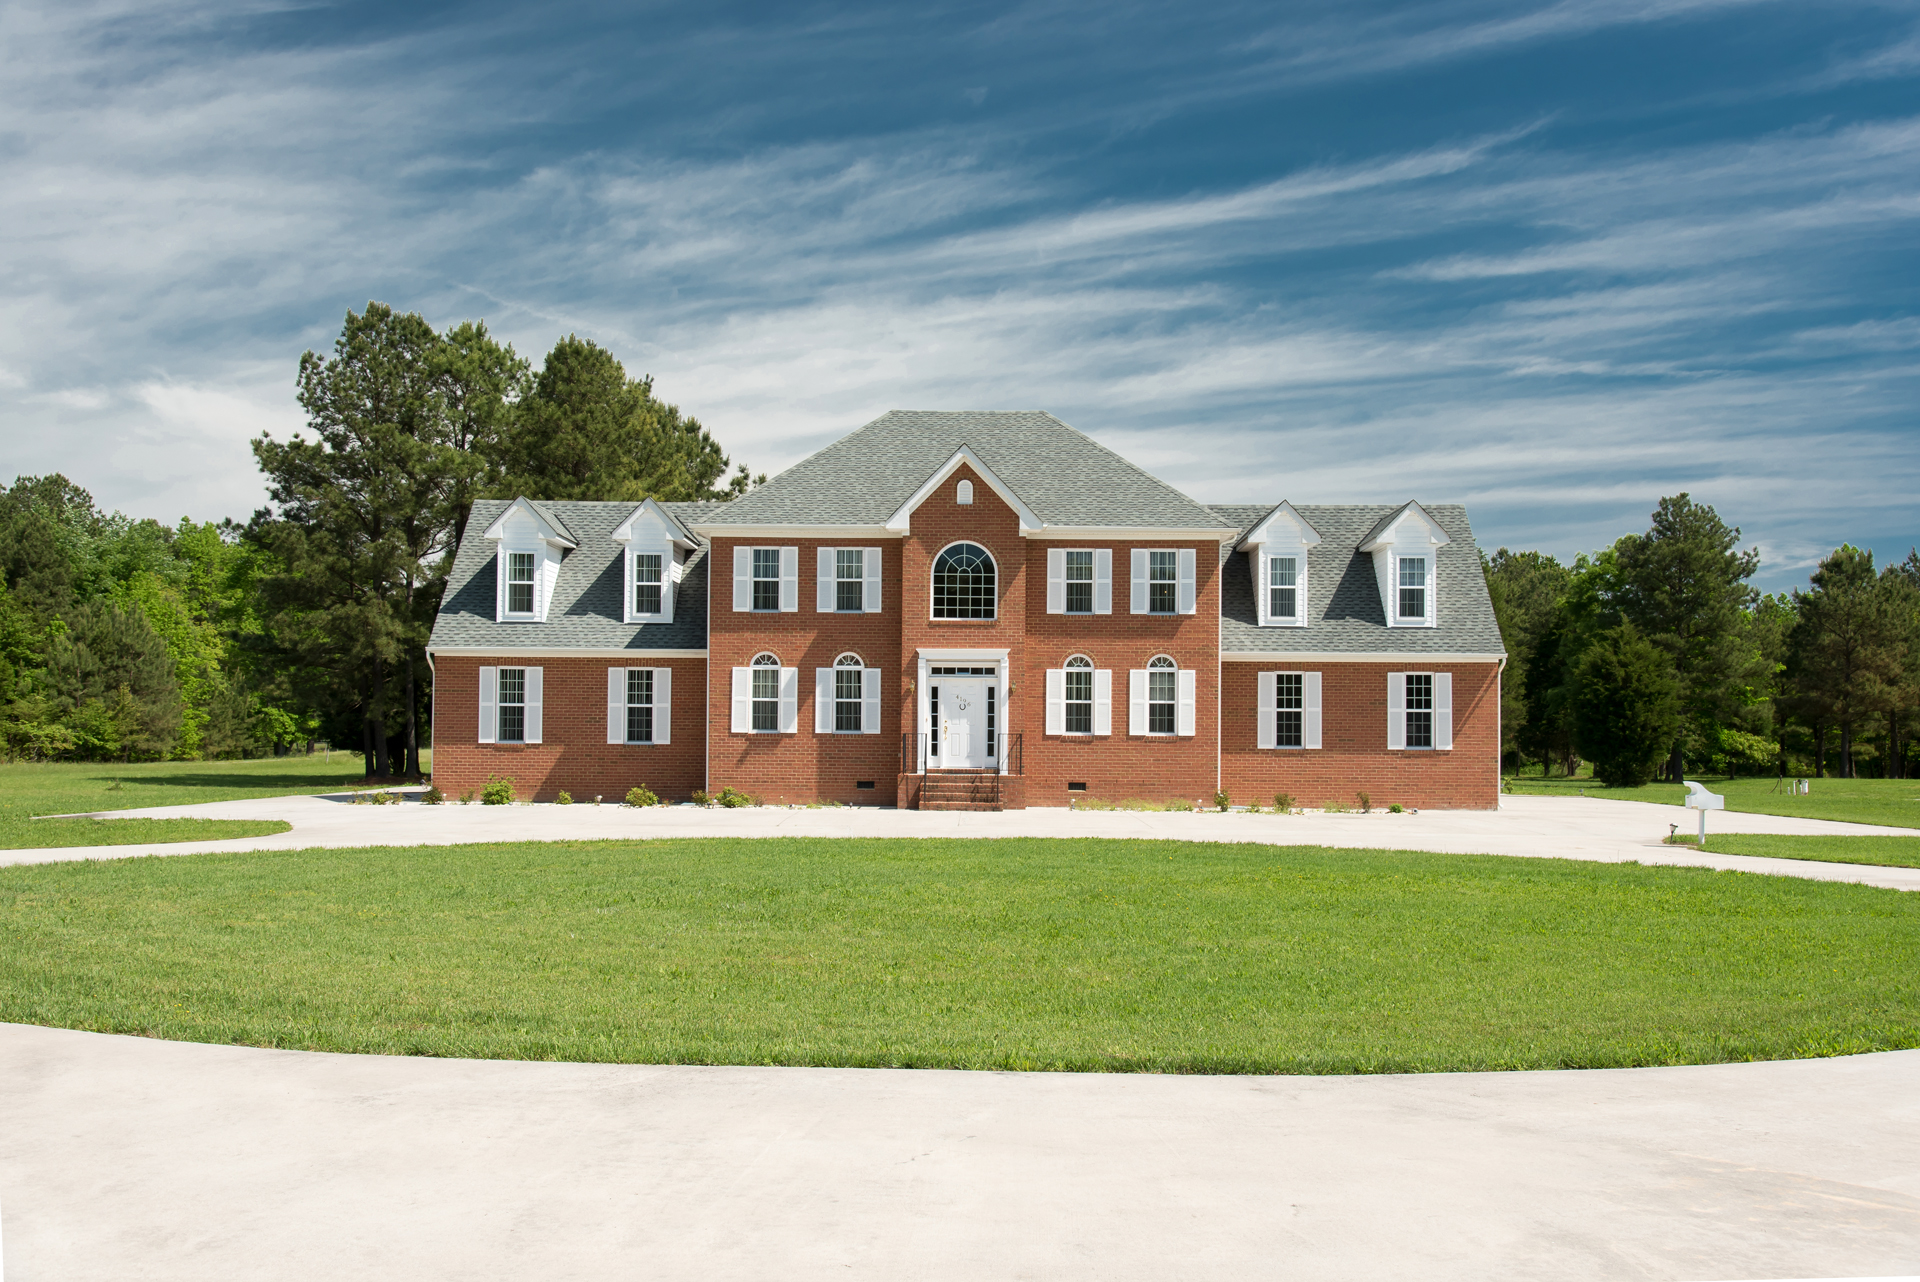 4196 Charles City Rd. Beautiful brick traditional with 15+ acres. Click the photo for a tour of this exquisite property.